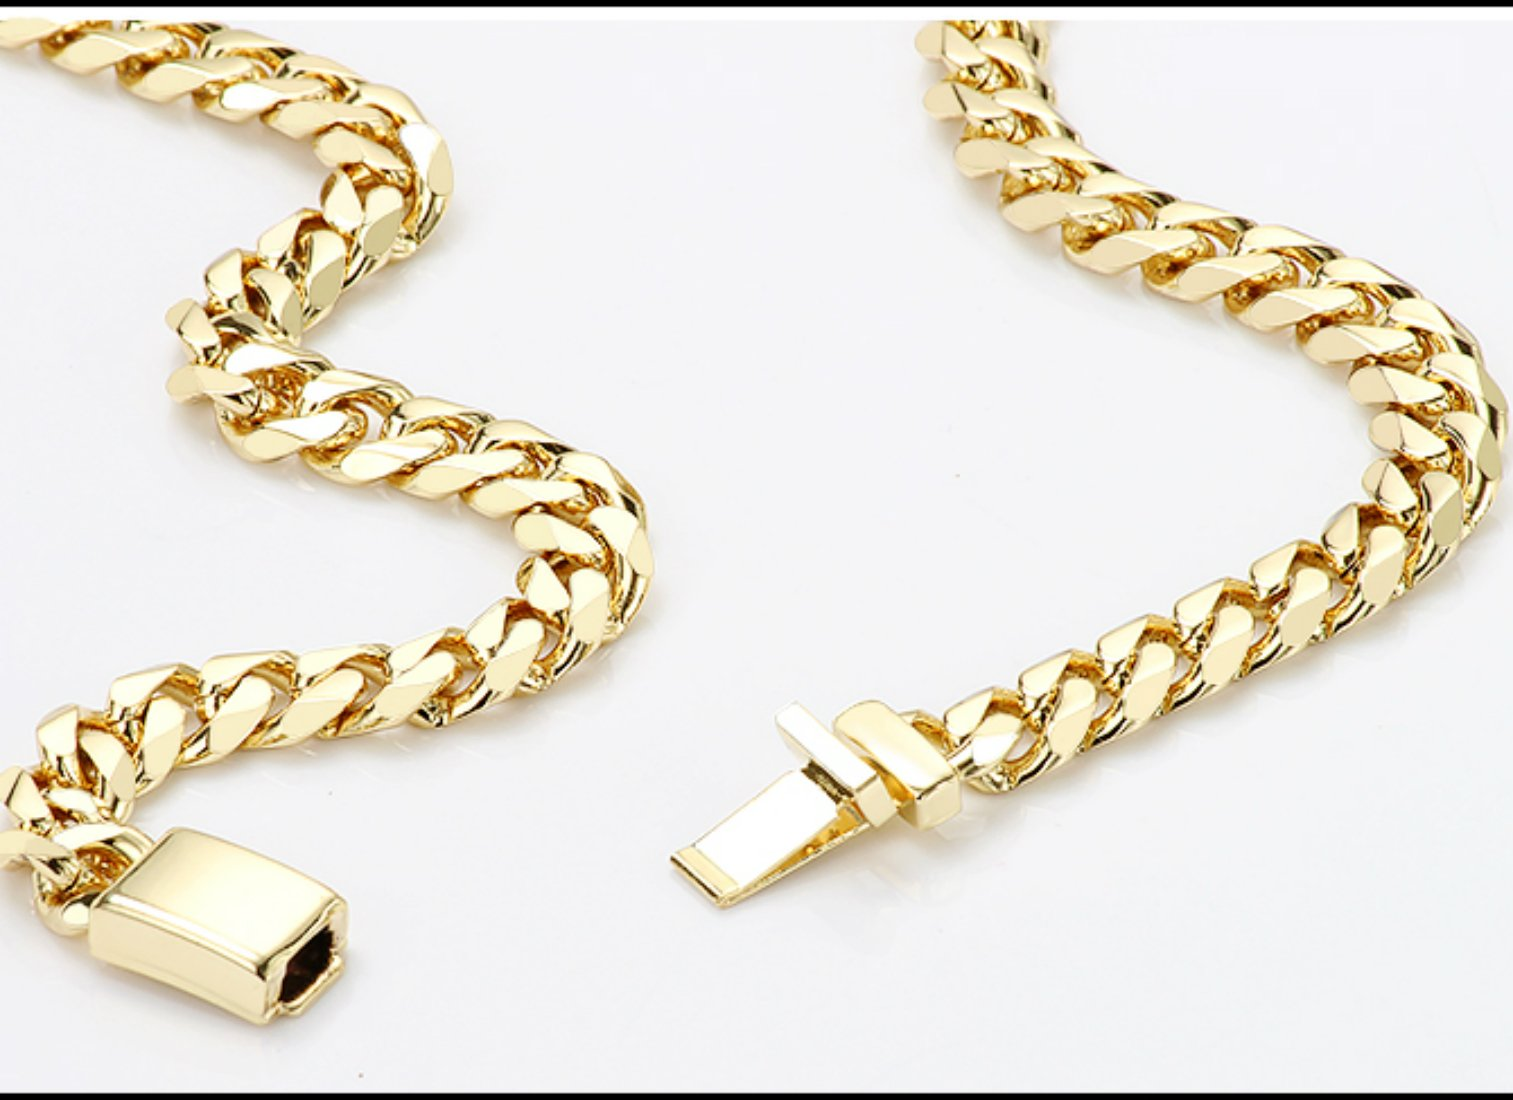 Gold chain necklace 14.5MM 24K Diamond cut Smooth Cuban Link with Warranty Of A LifeTimeLifetime USA made (28) by 14k Diamond Cut Smooth Cuban (Image #5)